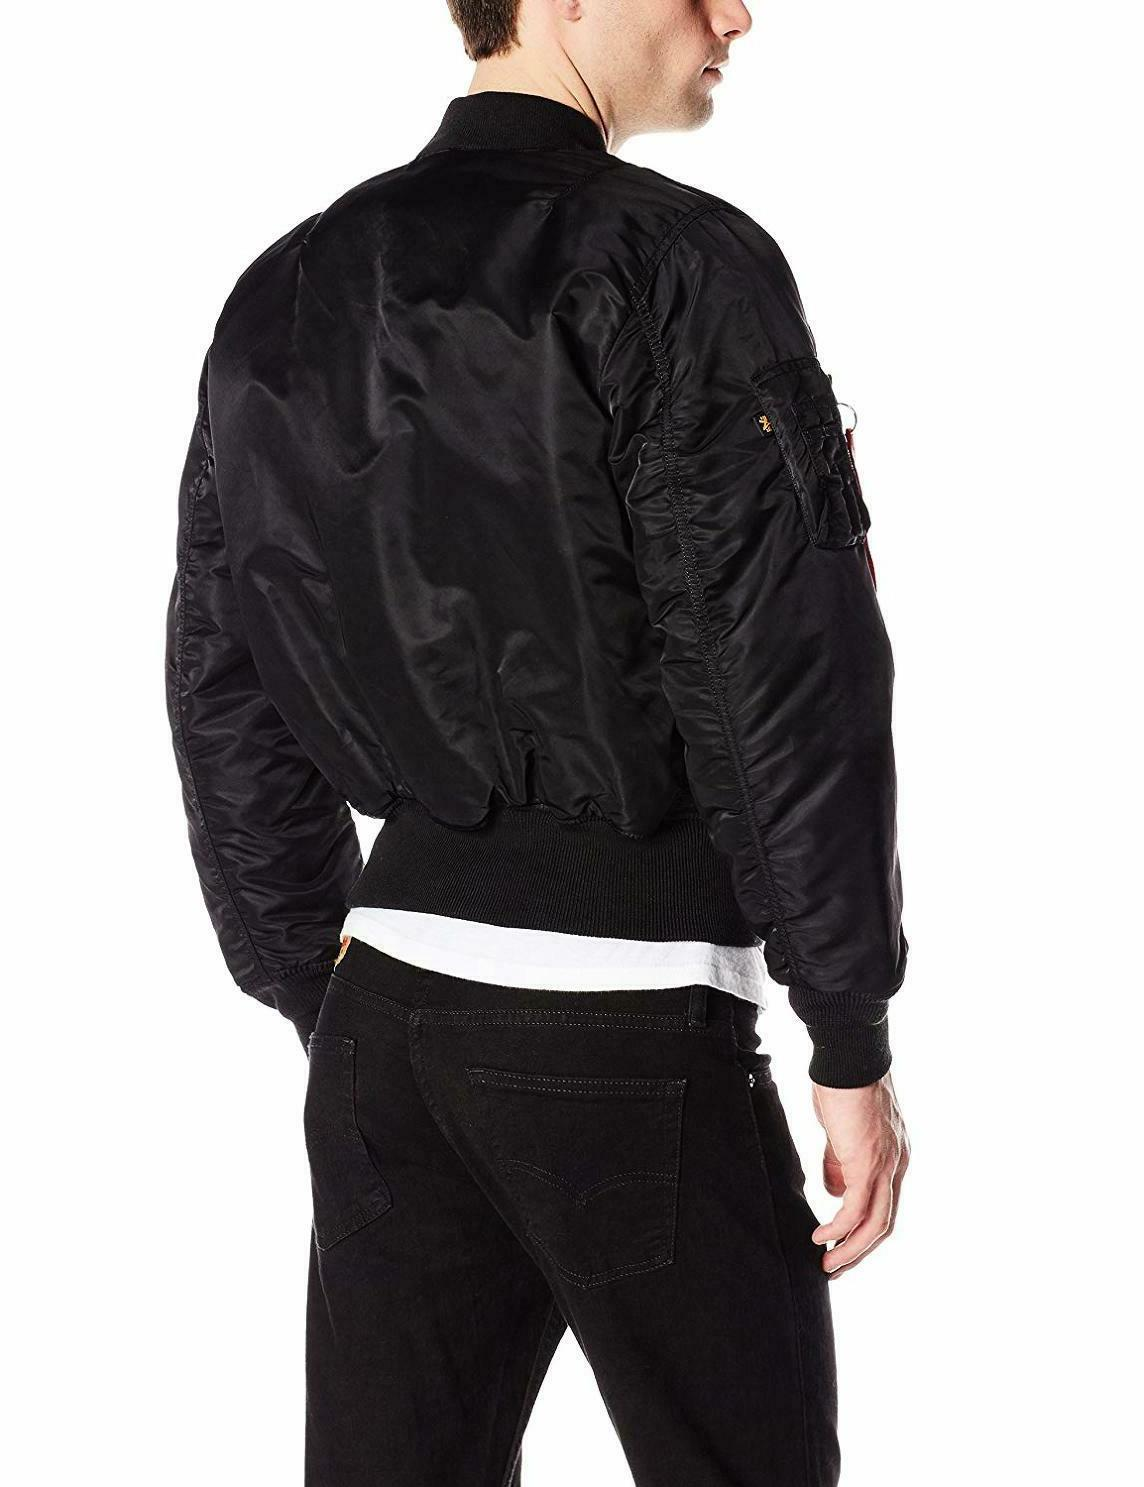 New MA-1 Bomber Jacket Black Medium